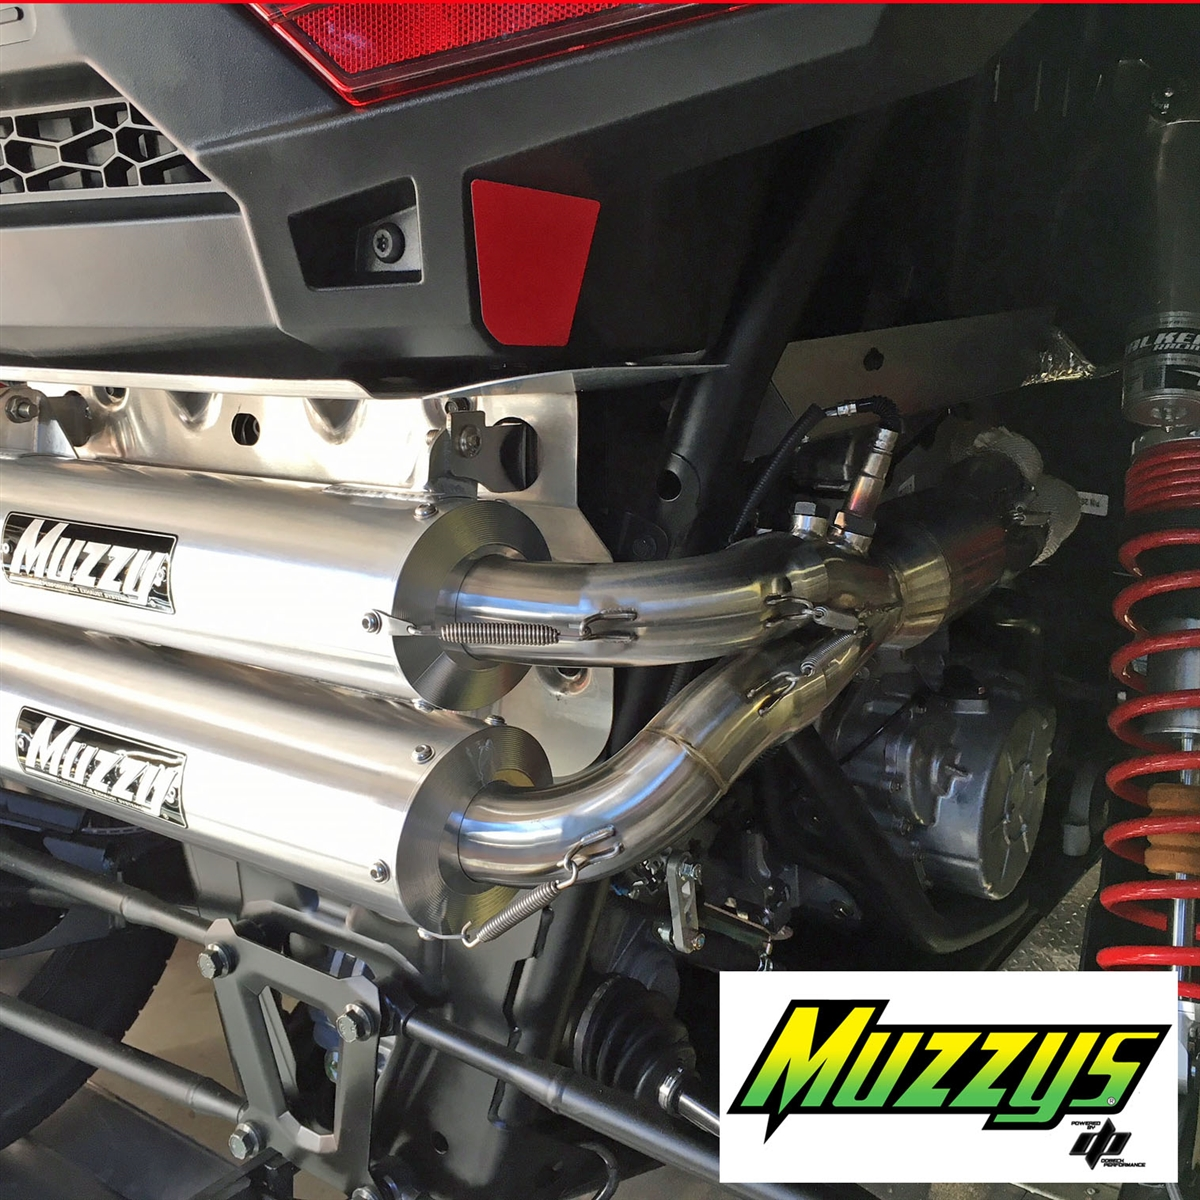 Muzzy's Polaris RZR XP1000 / RS1 Full Exhaust System